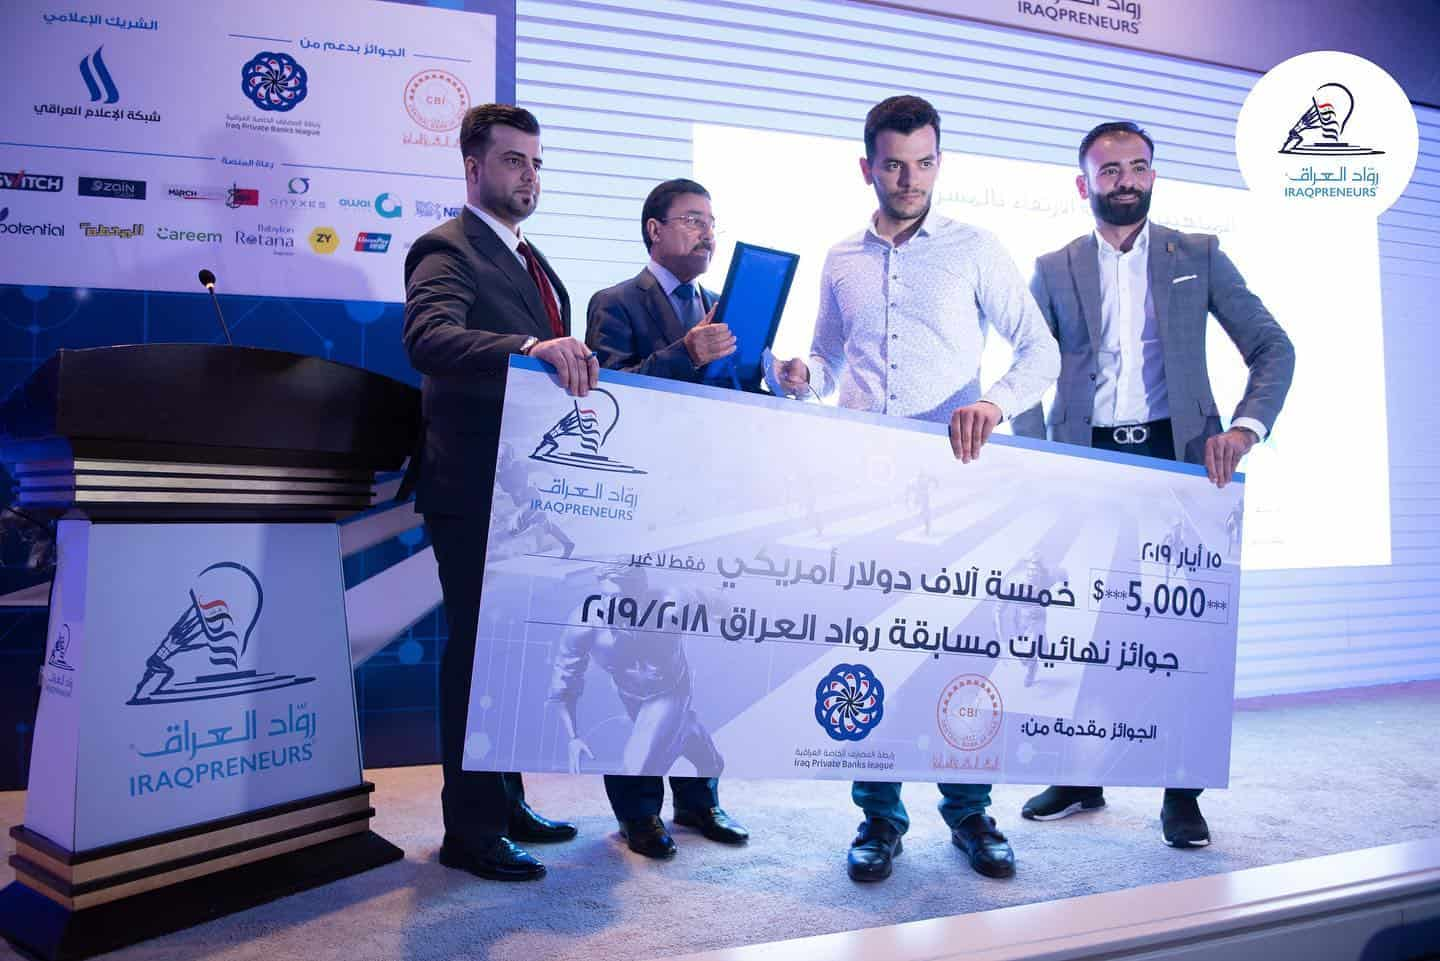 Mosul Technology Entrepreneur Yousif collecting his prize at the Ruwwad Al Iraq competition